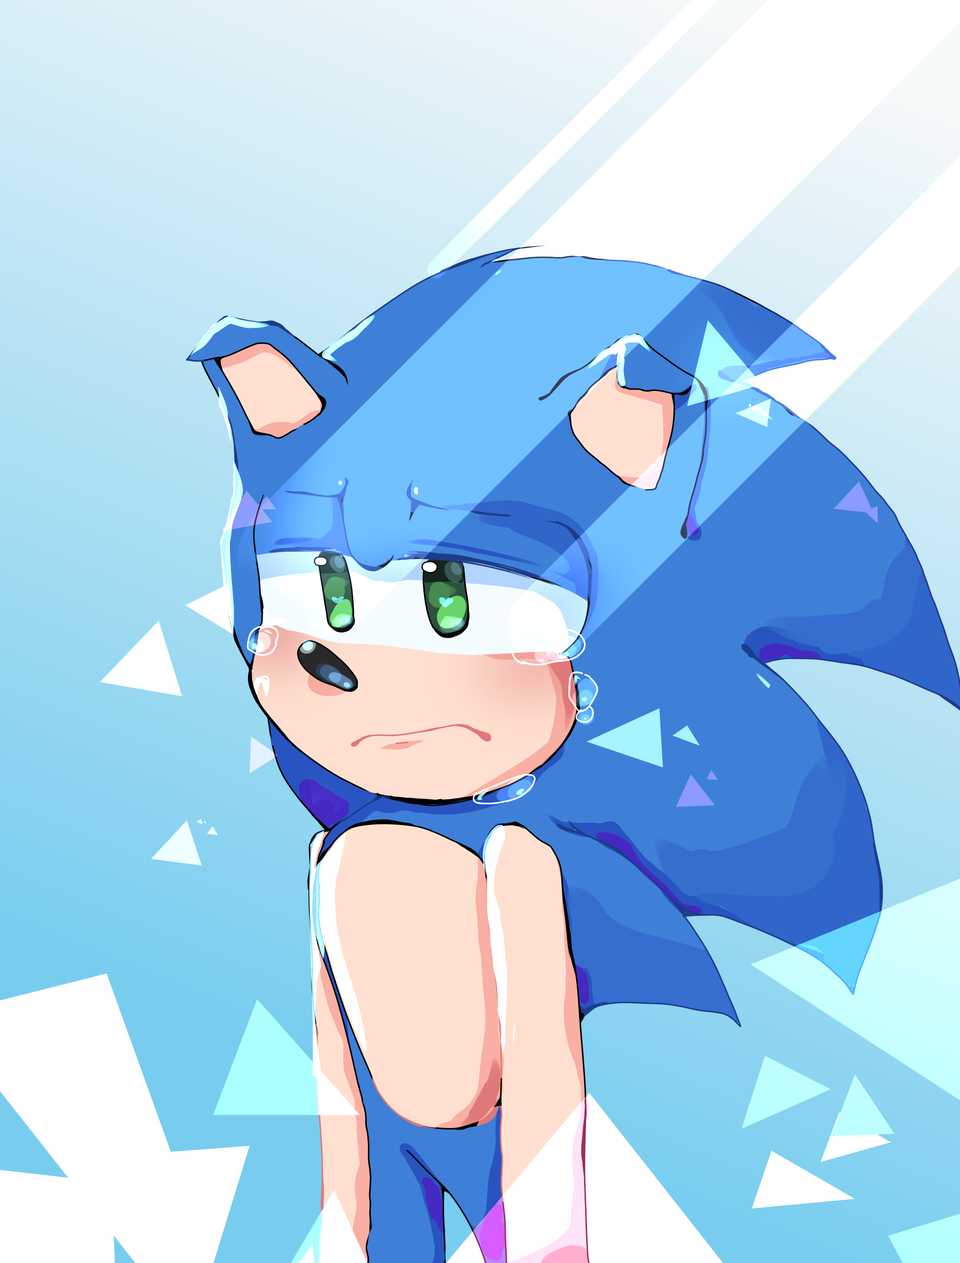 sad boi ':(       read desc if ya want to... Illust of Infinite stylez medibangpaint sega blue infinitestylez sad:( Sonic lightcolors sick